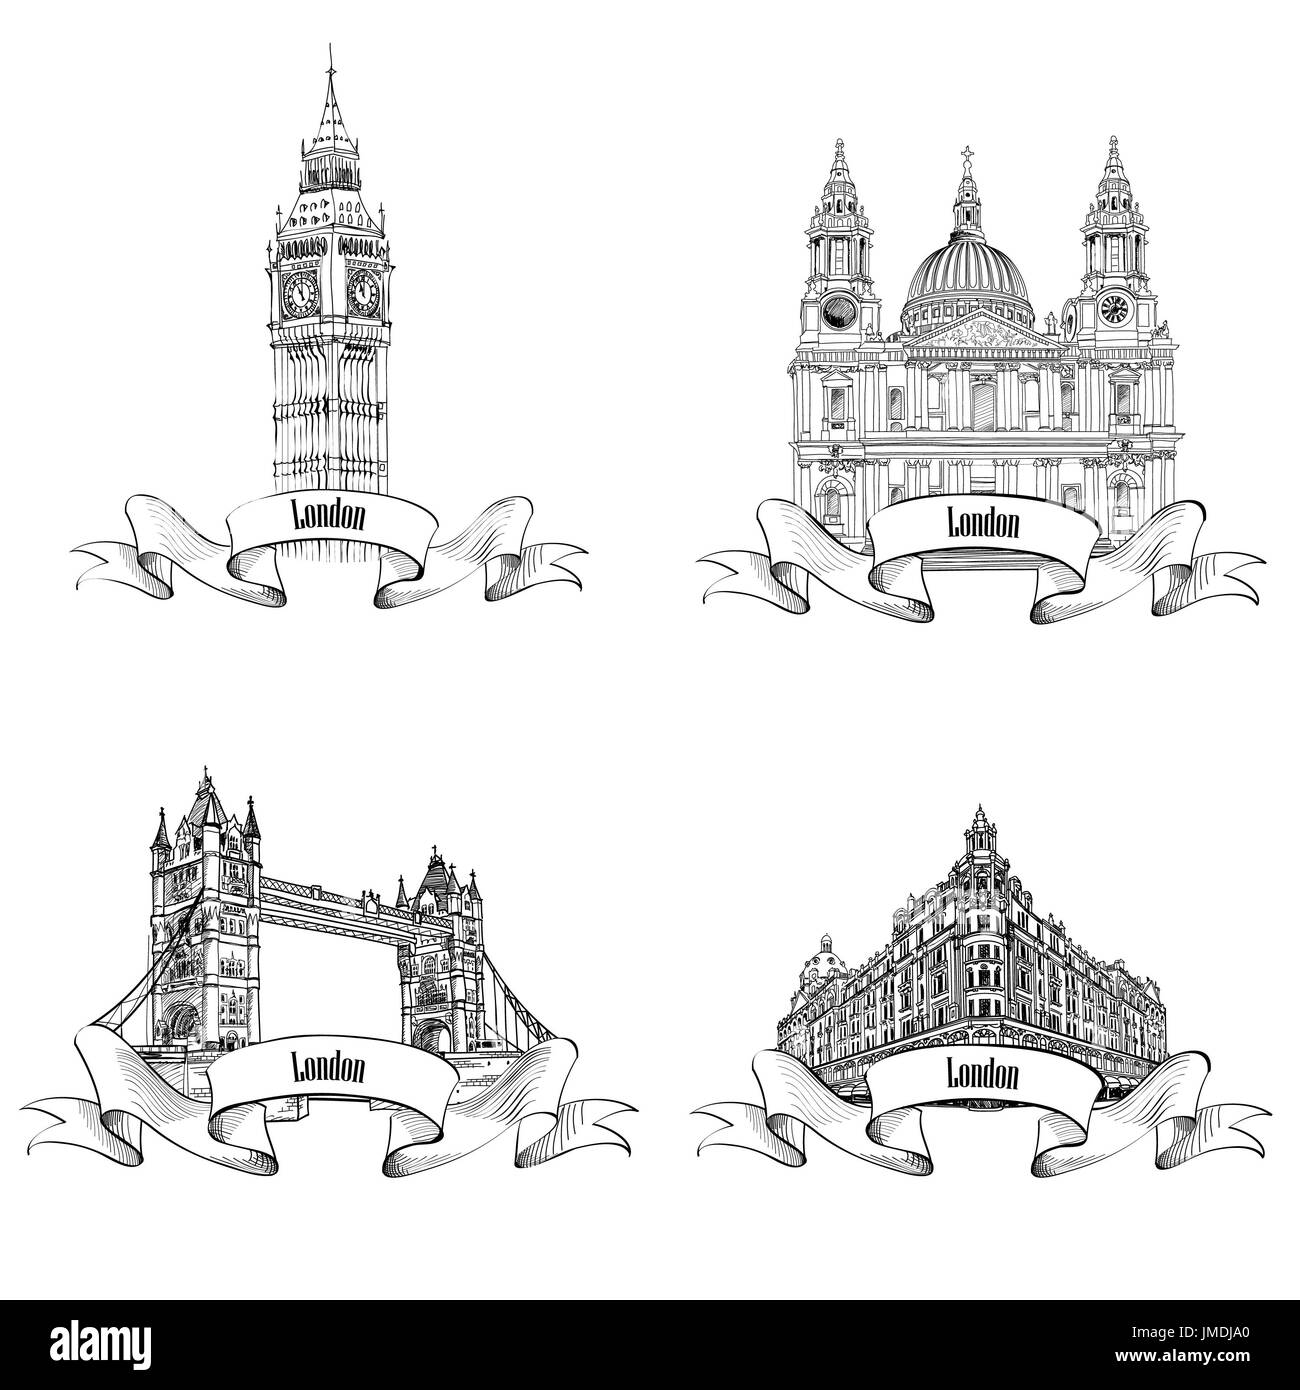 London famous buildings set. Engraving collection of London landmarks: Big Ben, Tower Bridge, St. Paul Cathedral, Harrods store. Travel UK icon collec - Stock Image